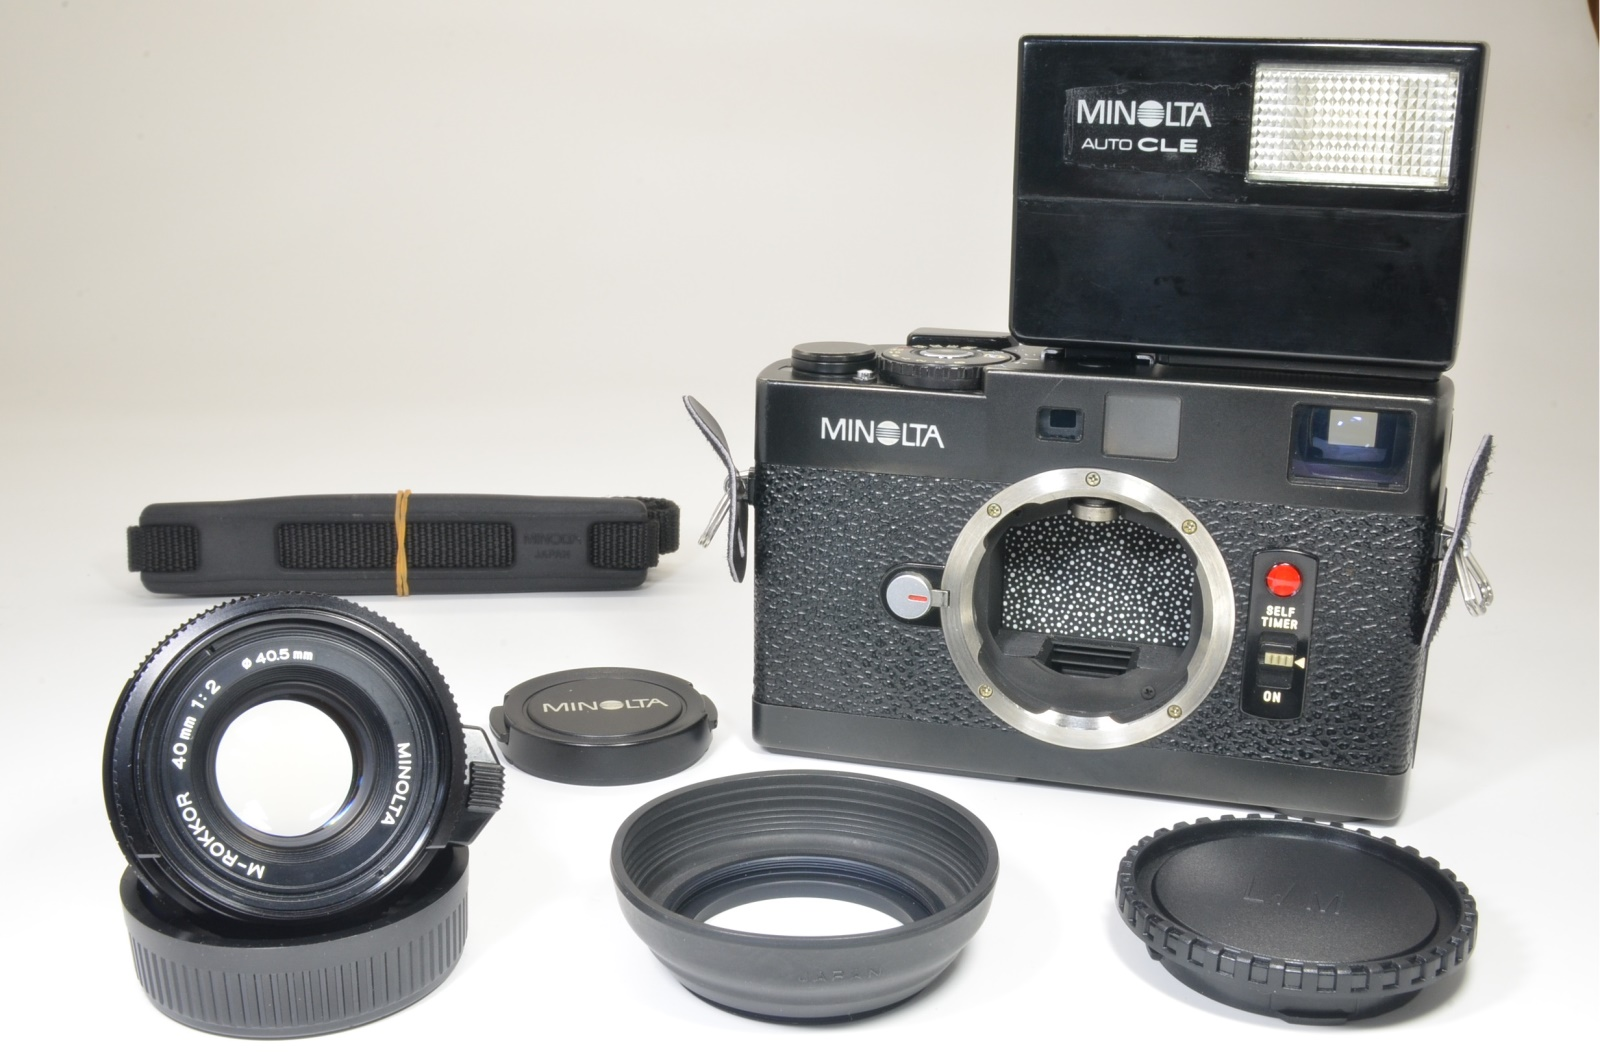 minolta cle film camera with m-rokkor 40mm f2 and flash shooting tested